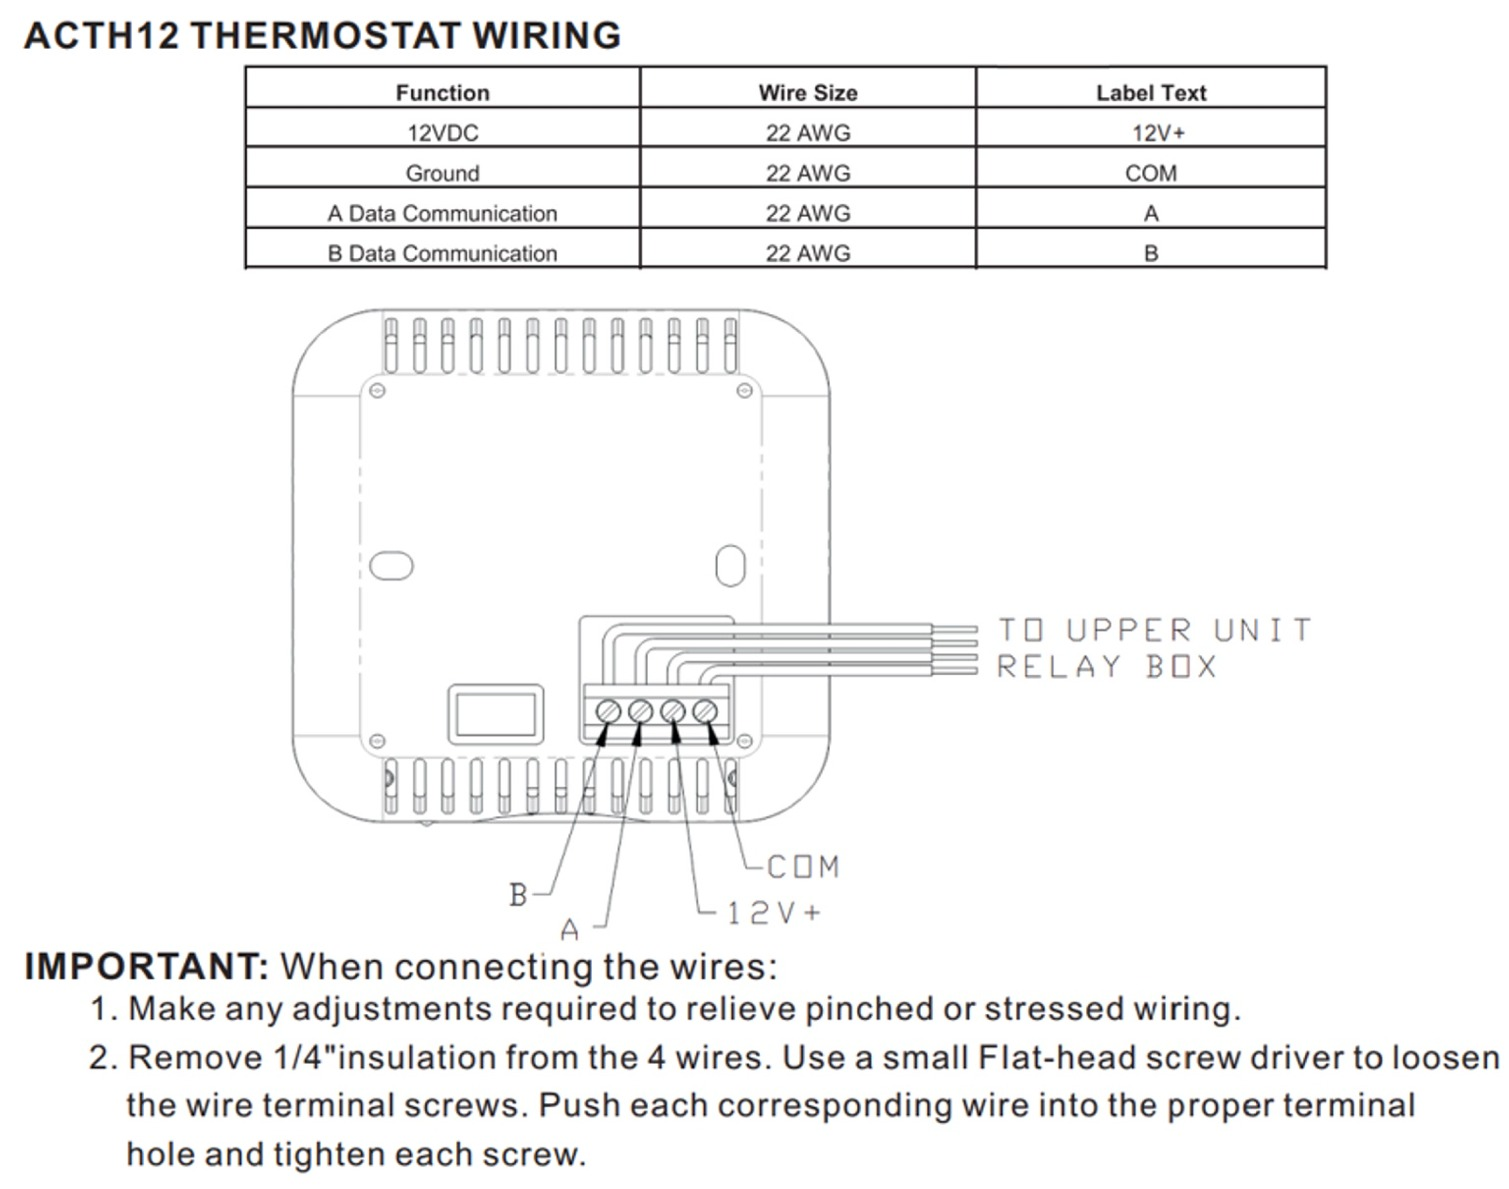 Digital Thermostat Wiring Diagram from data3.answerbase.com